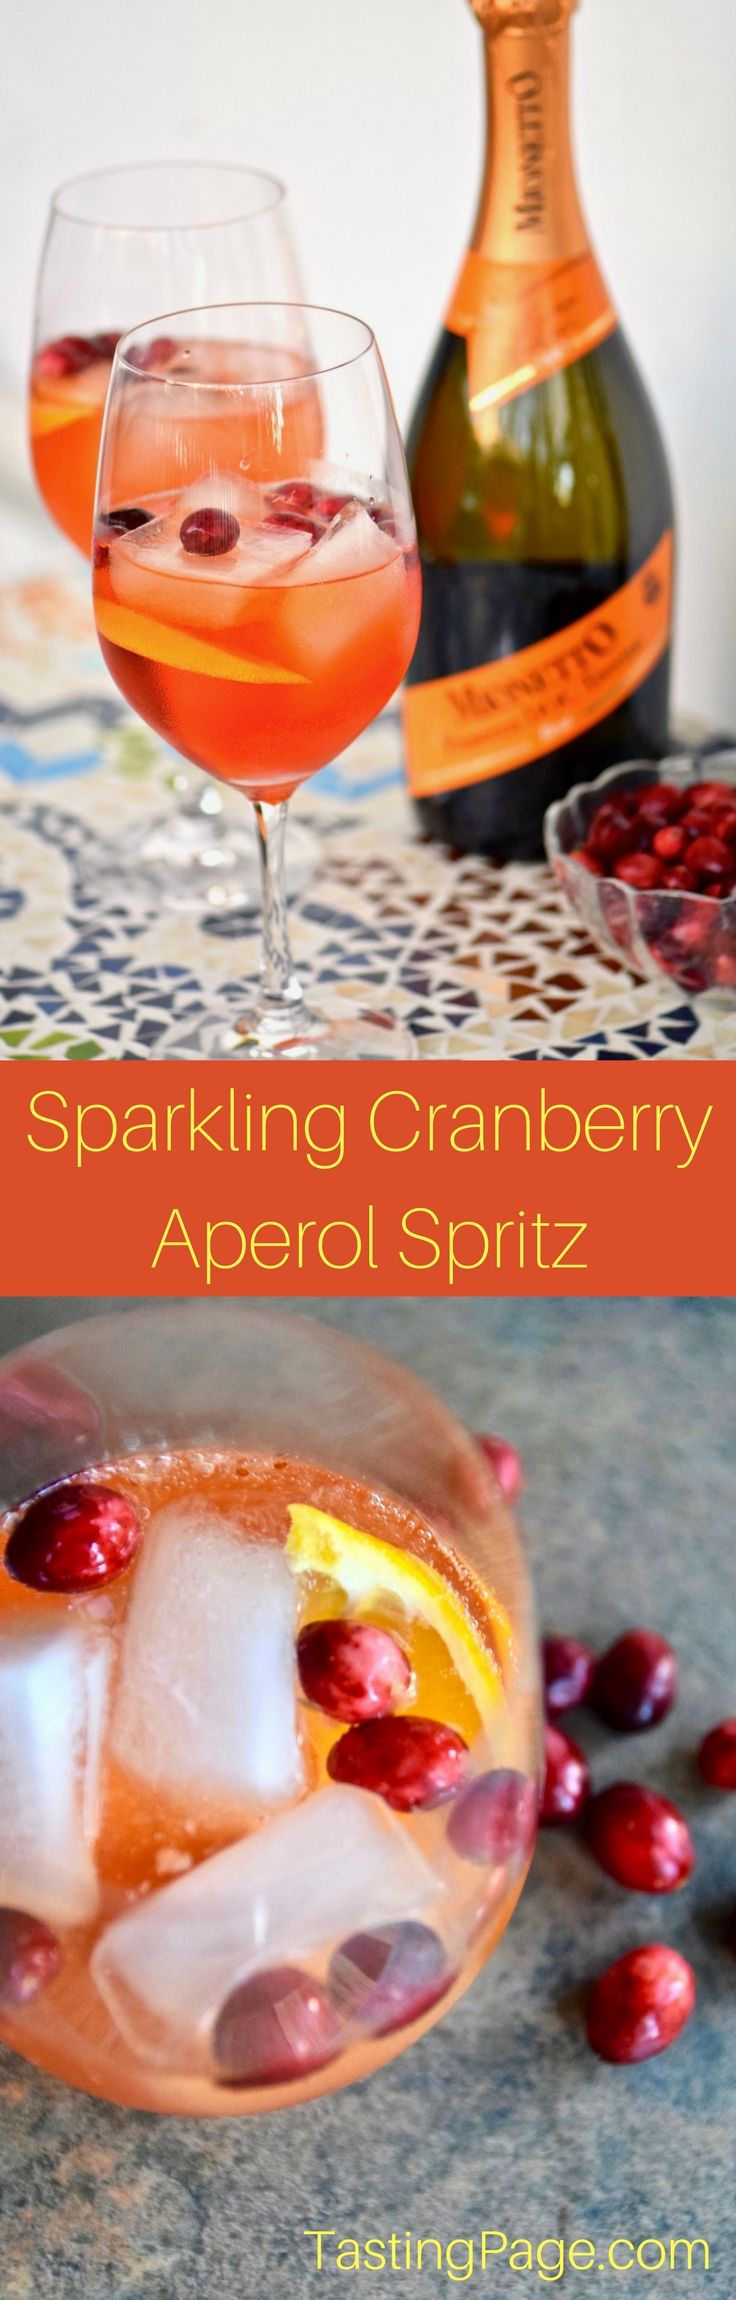 Sparkling Cranberry Aperol Spritz - great holiday party cocktail | TastingPage.com  Content for 21+ MyMionetto AD